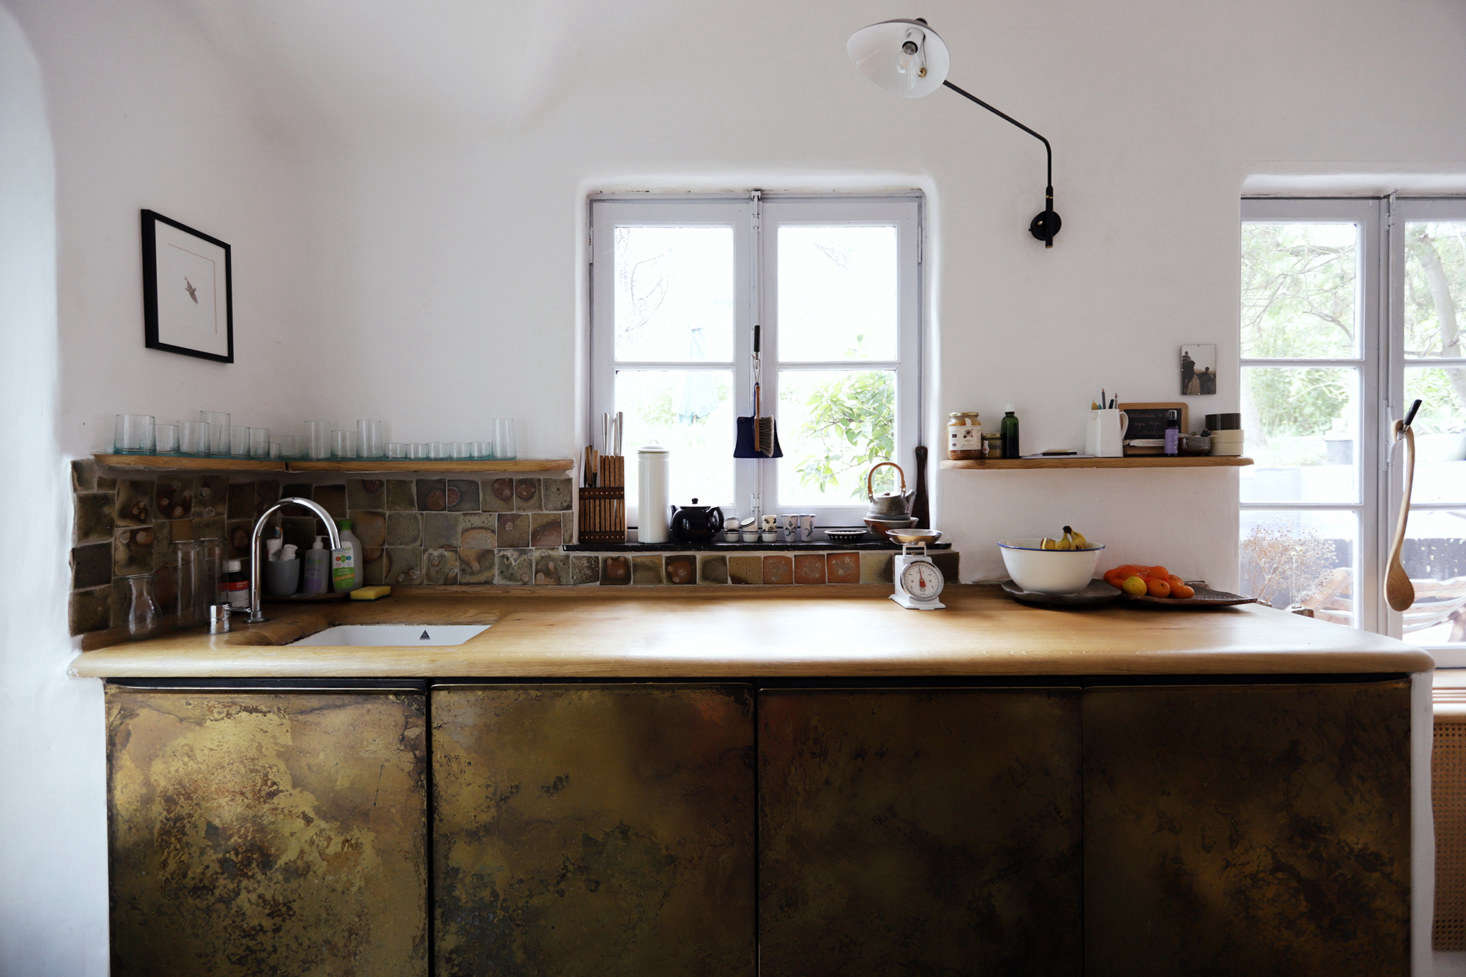 """The kitchen is entirely new, though Valentin says, """"there really wasn't anything there before to remove."""" The cabinets are handmade from patinated brass and the counter is carved oak finished with hardwax. The tile backsplash is made from tiles Valentin made in his father's studio (his father is a ceramicist) as a child. The porcelain kitchen sink was found in the basement of the house."""